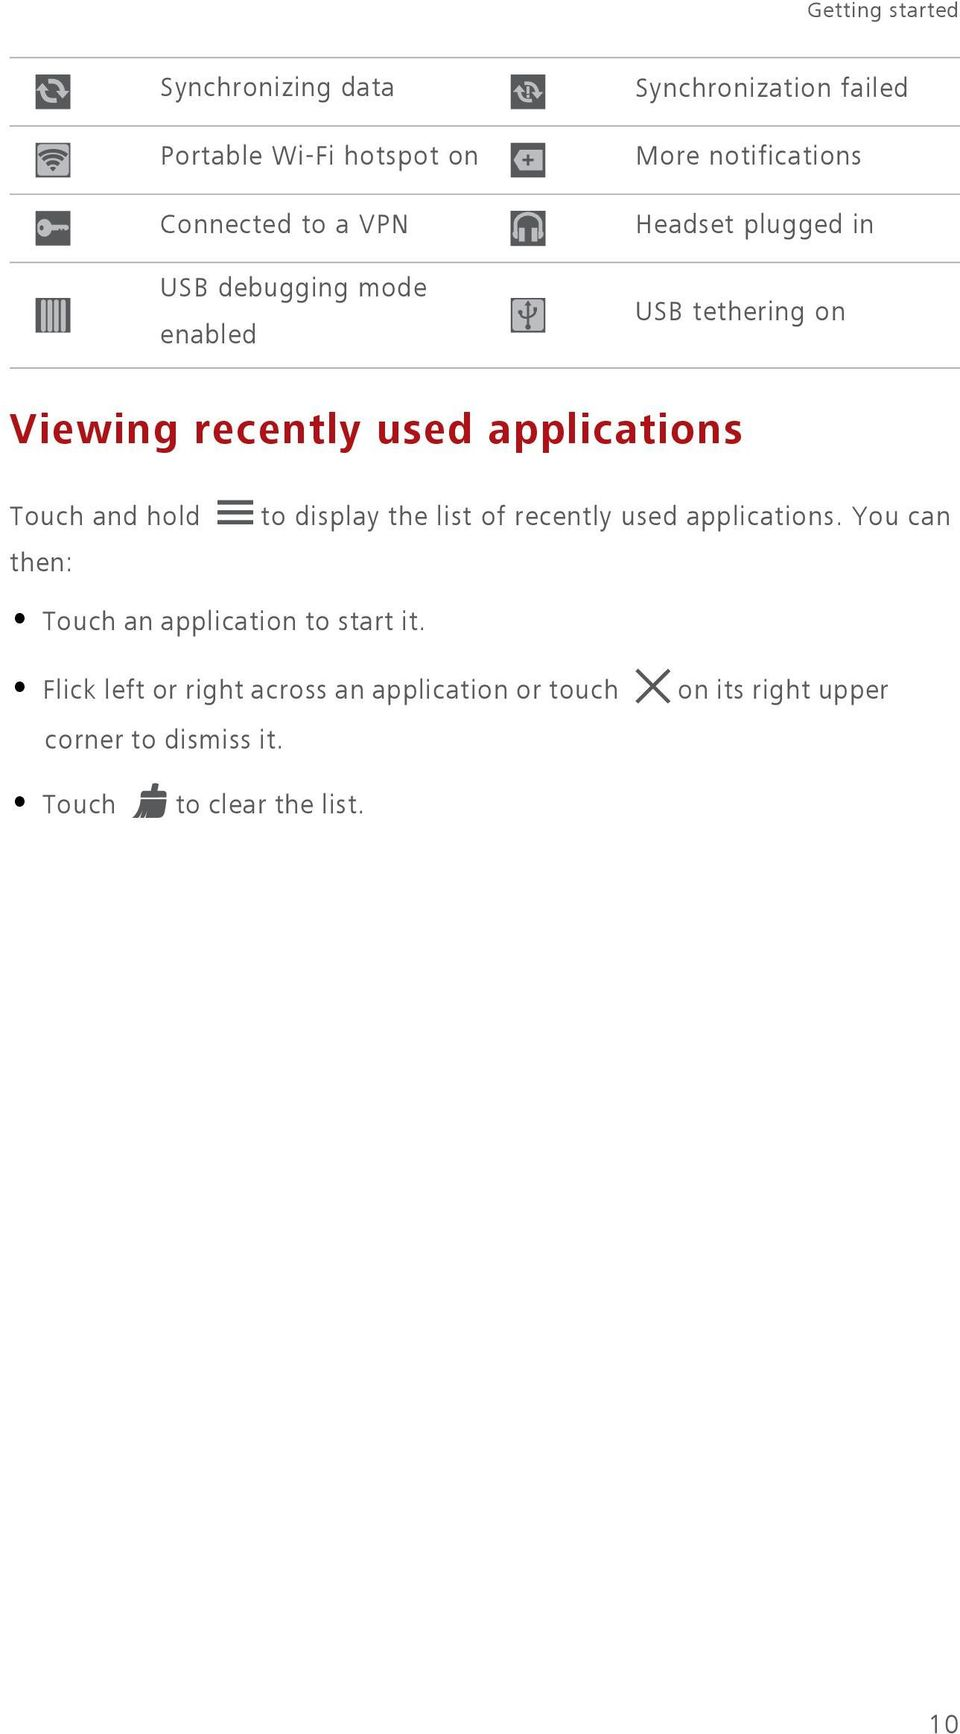 Touch and hold then: to display the list of recently used applications. You can Touch an application to start it.